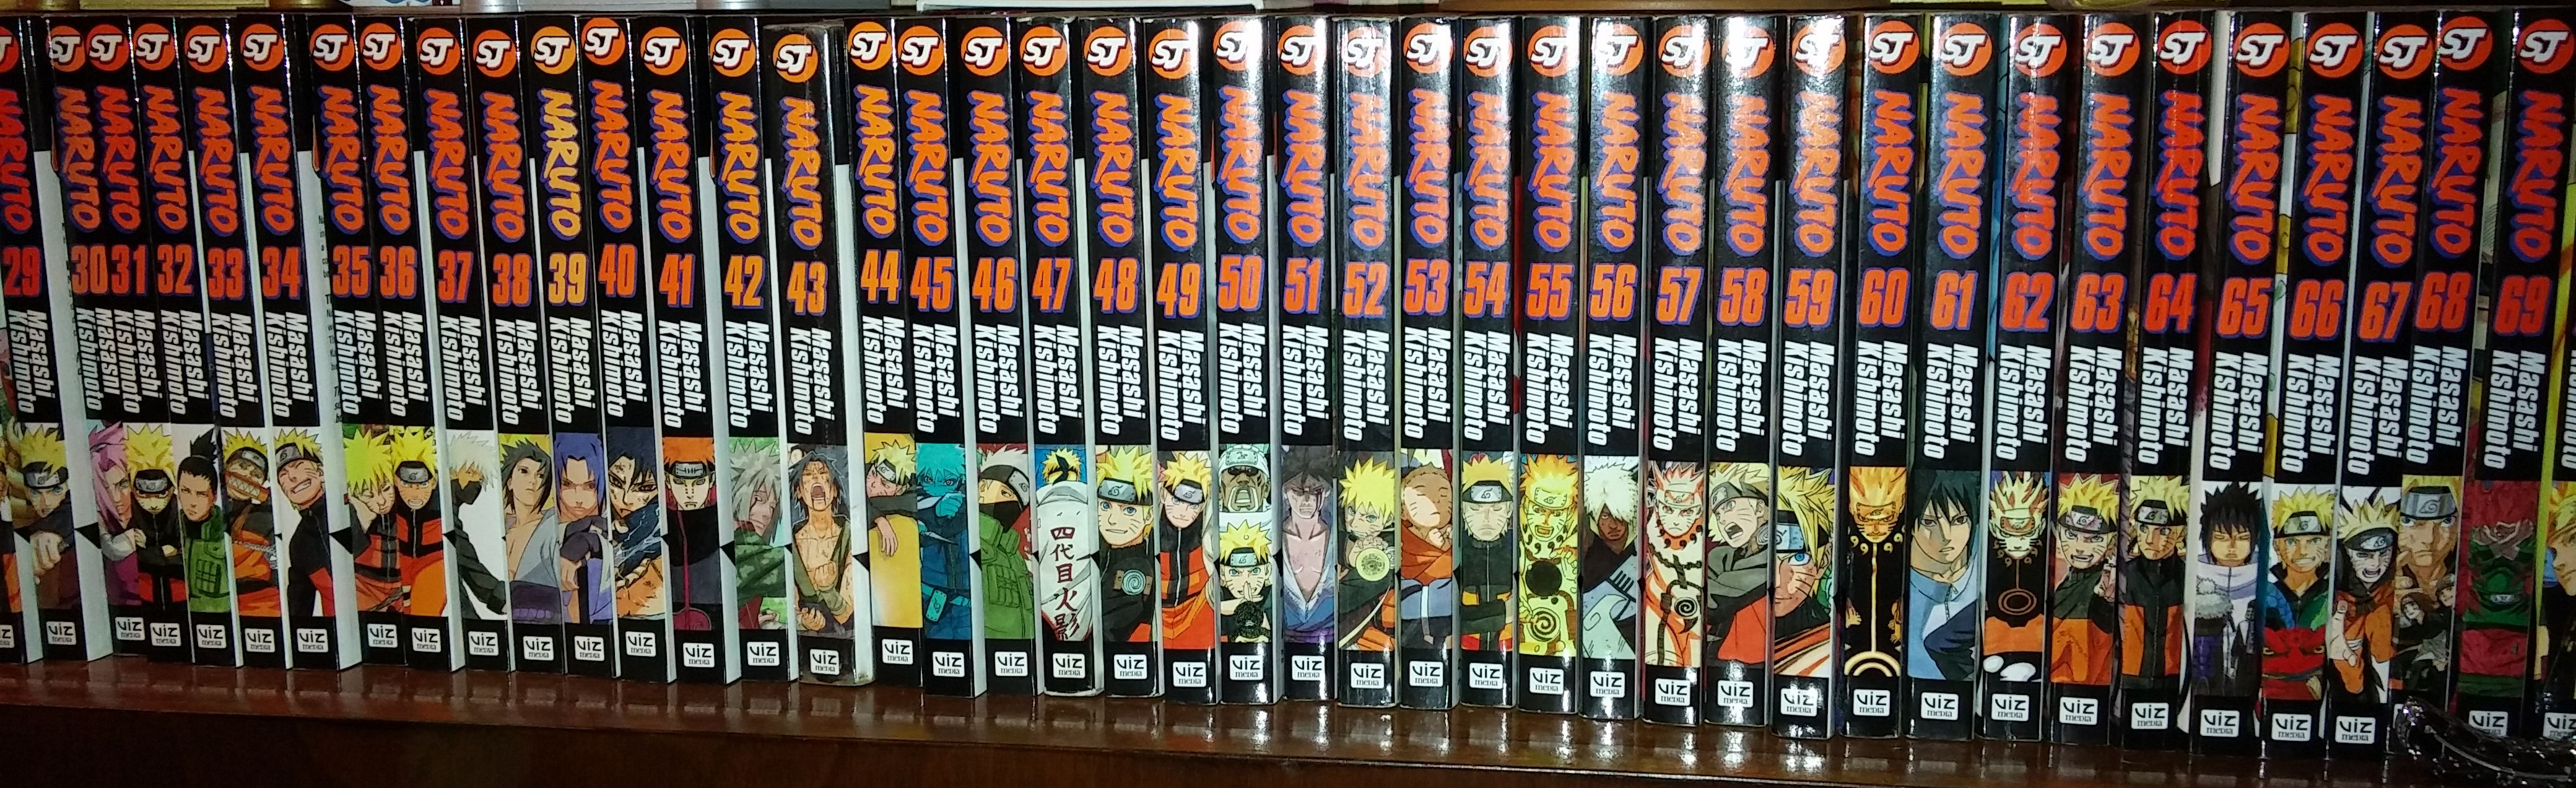 Manga Tag A Snippet Of My Collection